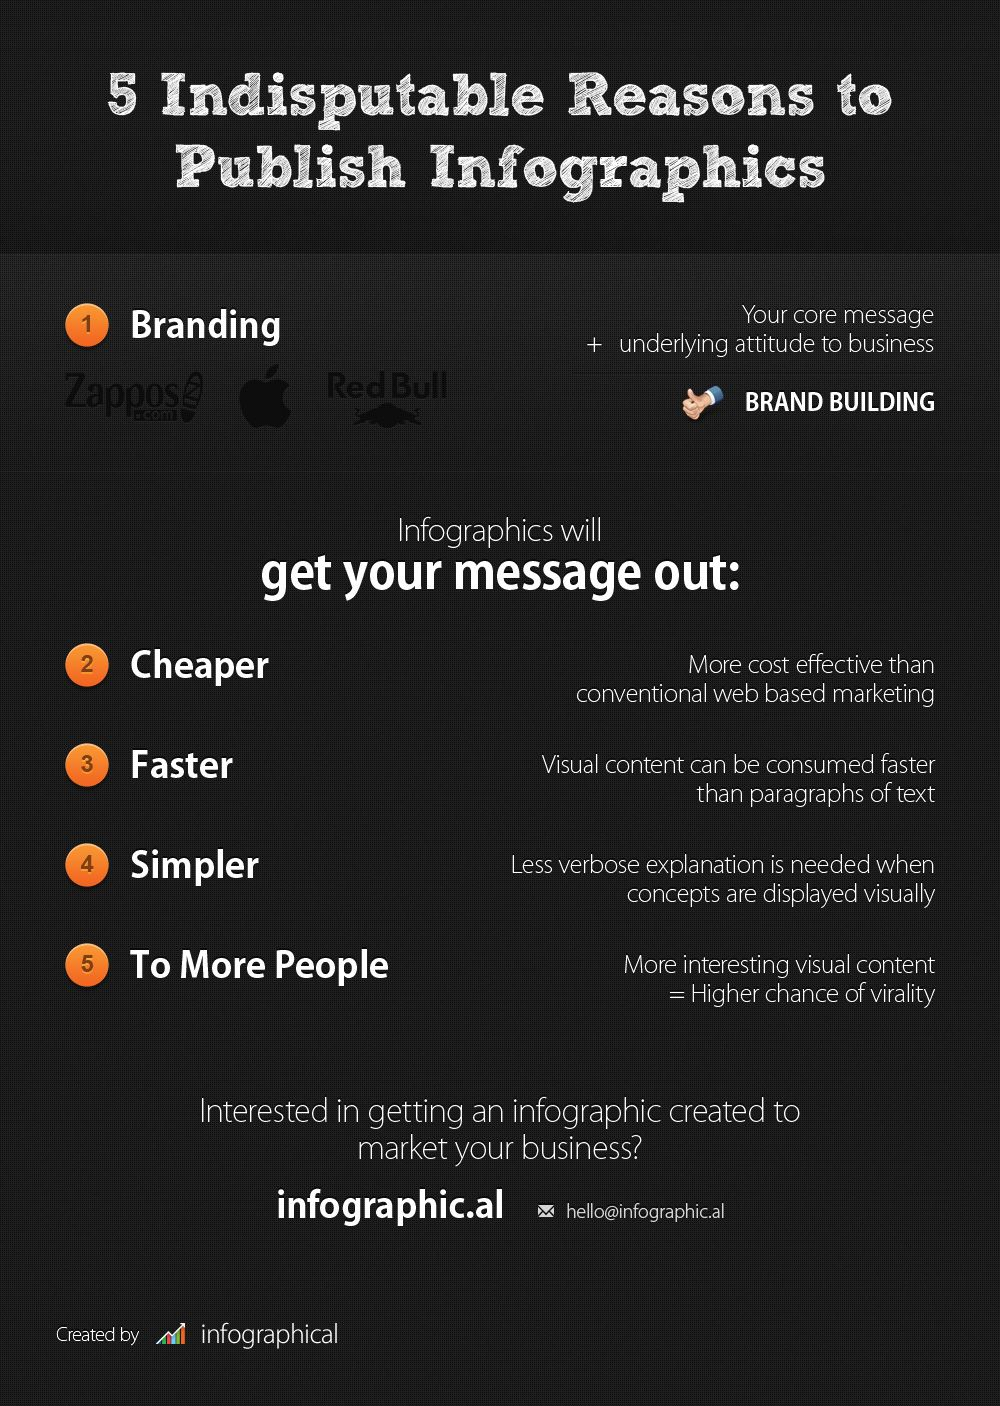 5 Indisputable Reasons to Create an Infographic